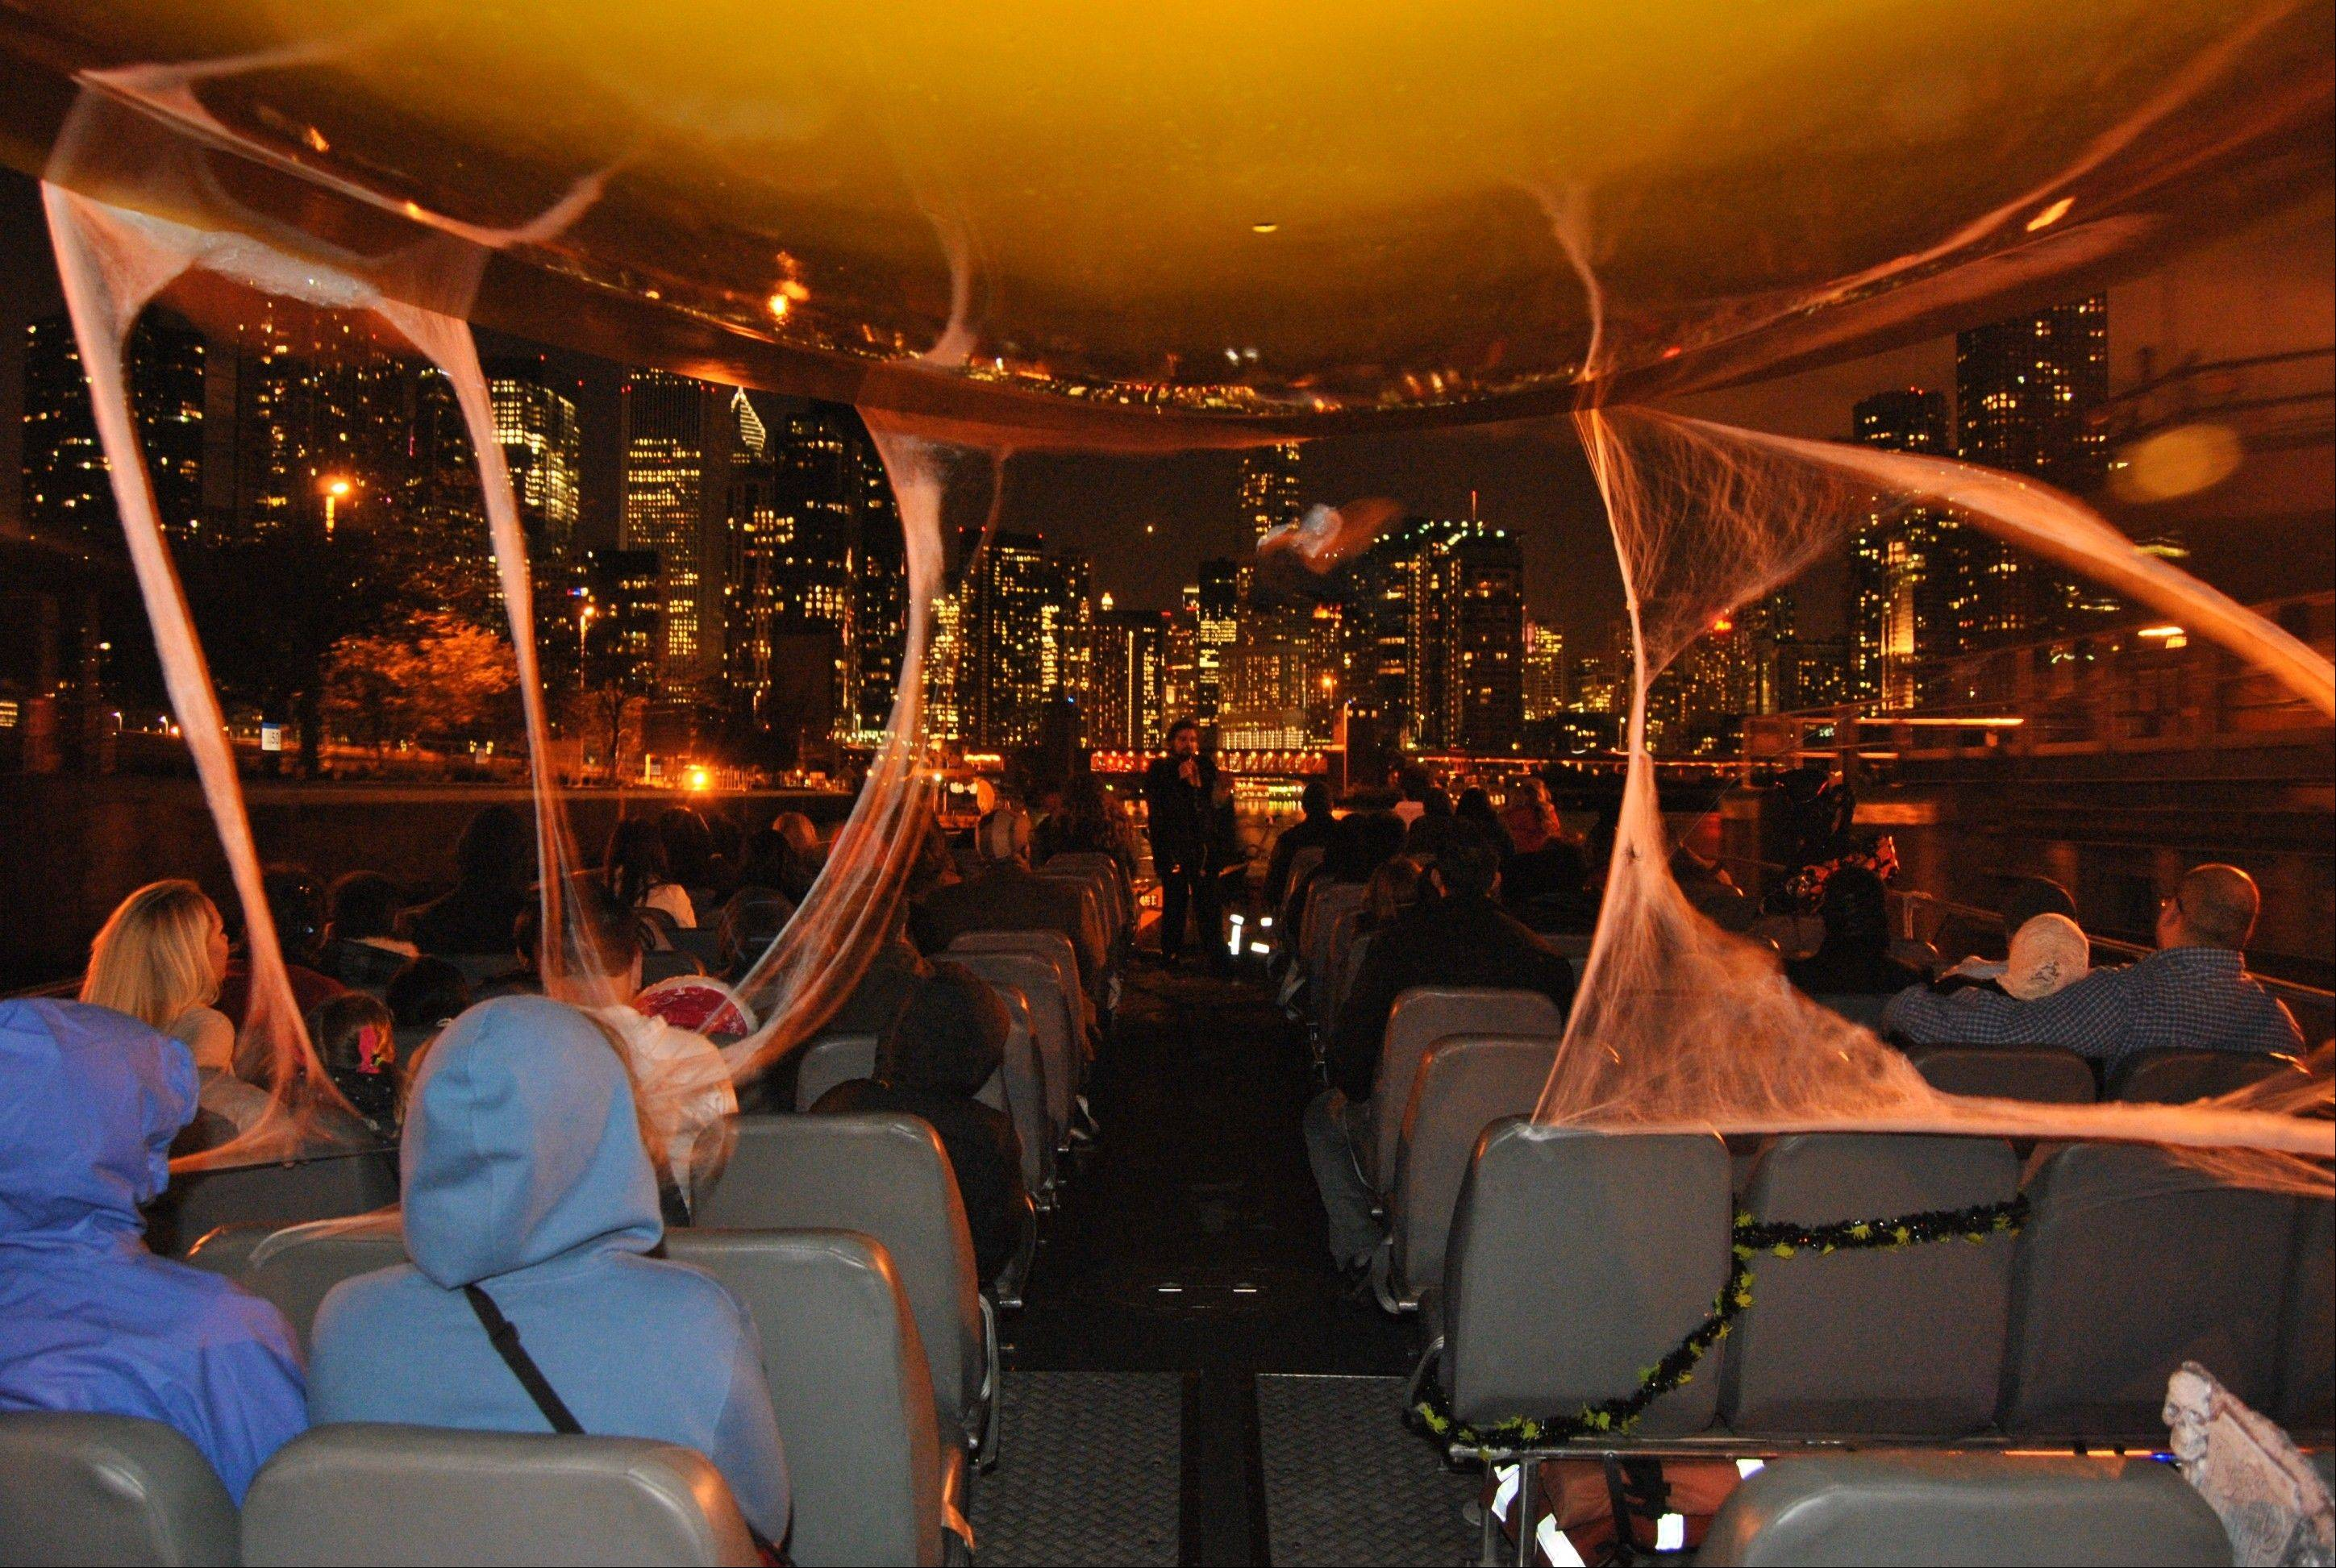 Seadog Haunted Tours focus on Chicago River tragedies involving Fort Dearborn and the Eastland Disaster.